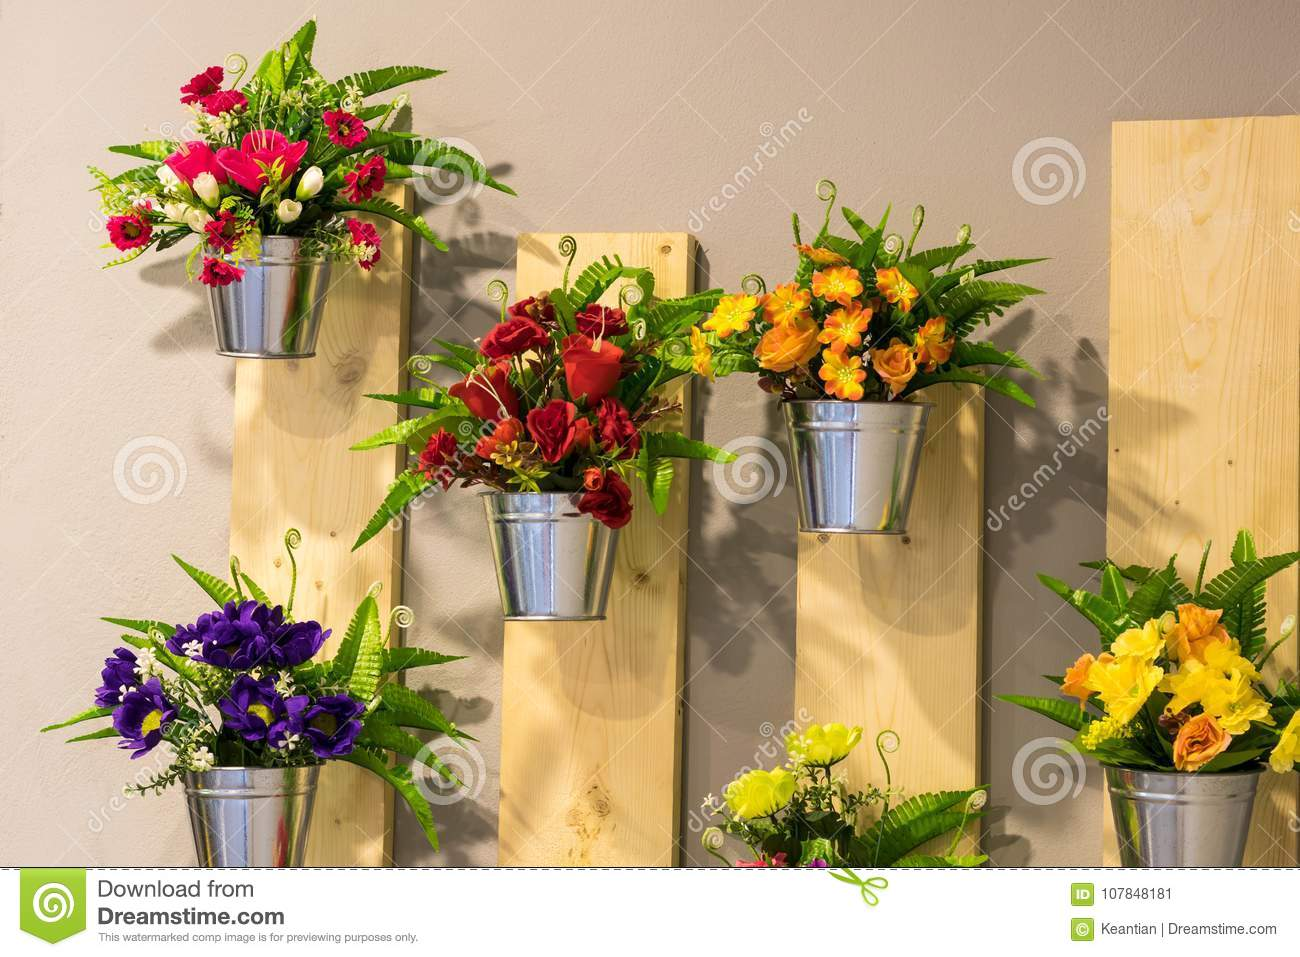 Artificial Flowers In Pots On The Wall. Stock Image - Image of ...